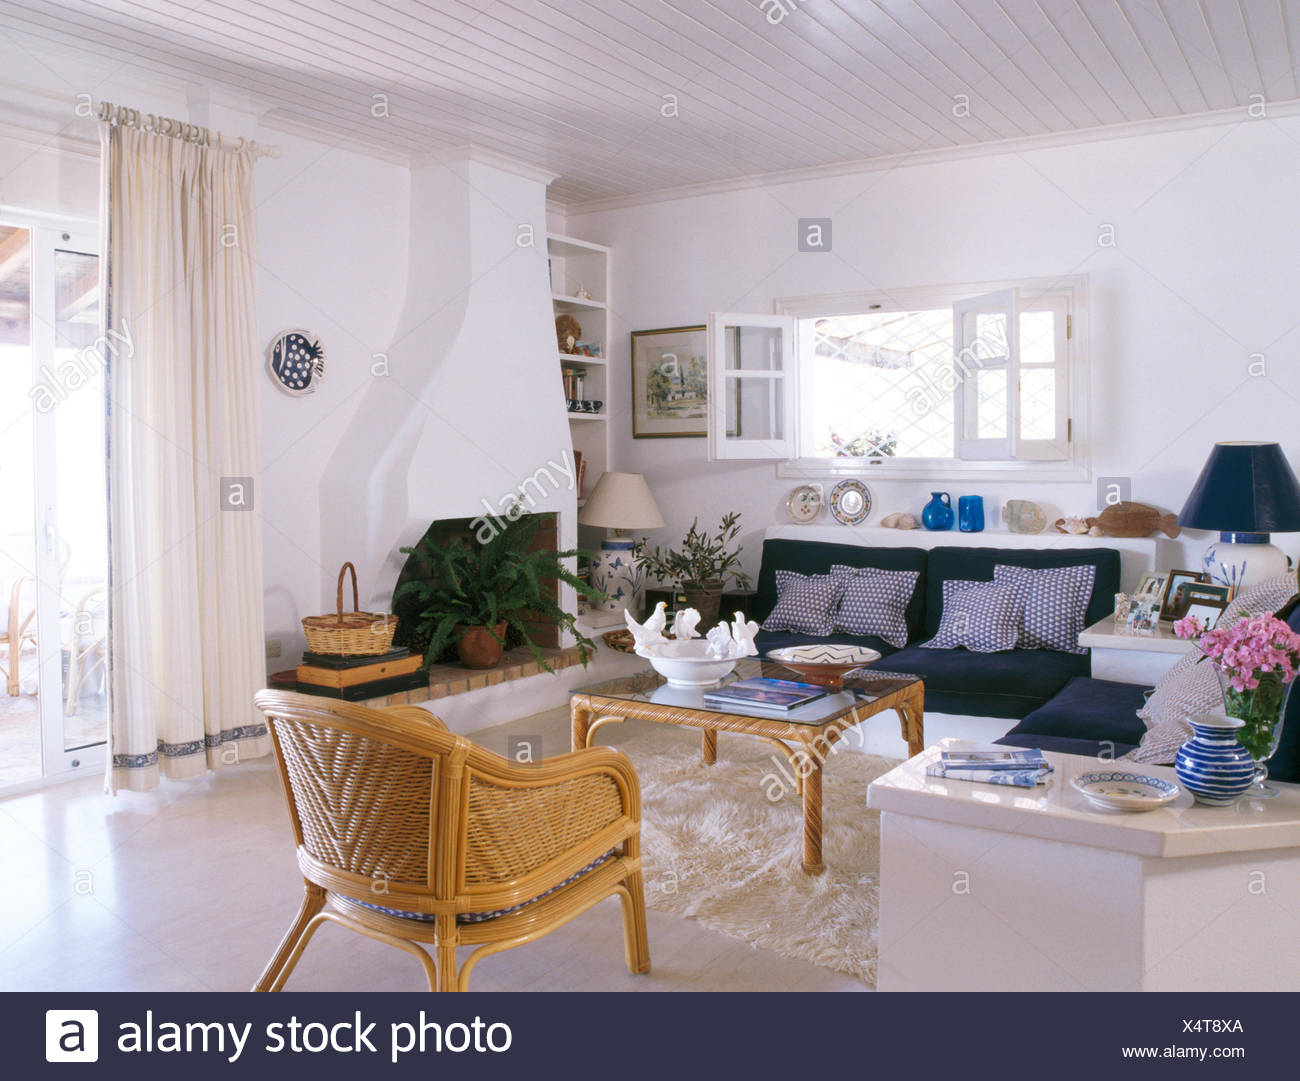 Cane Chair And Fitted Sofa With Blue Cushions In White Coastal Sitting Room With White Curtains On French Windows Stock Photo Alamy